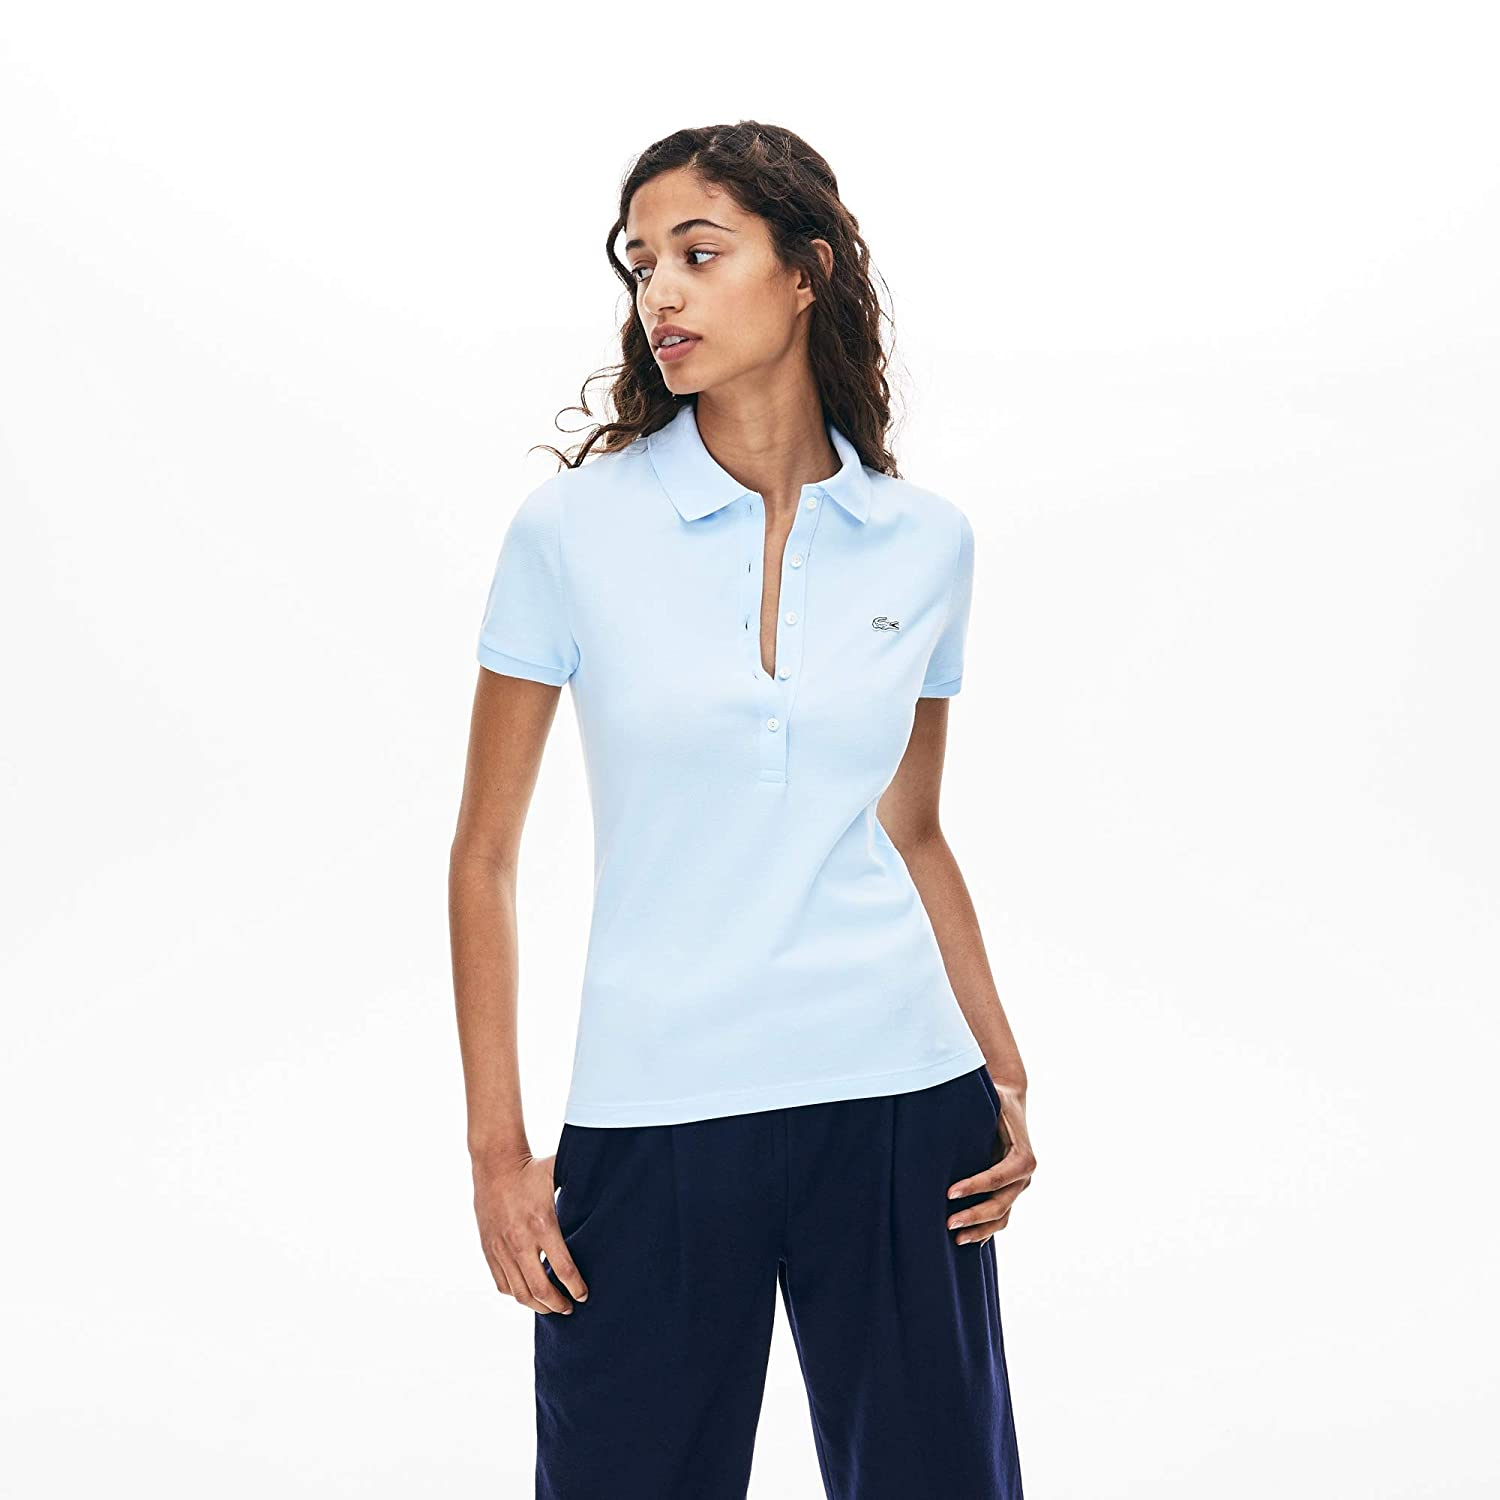 Polo mujer lacoste